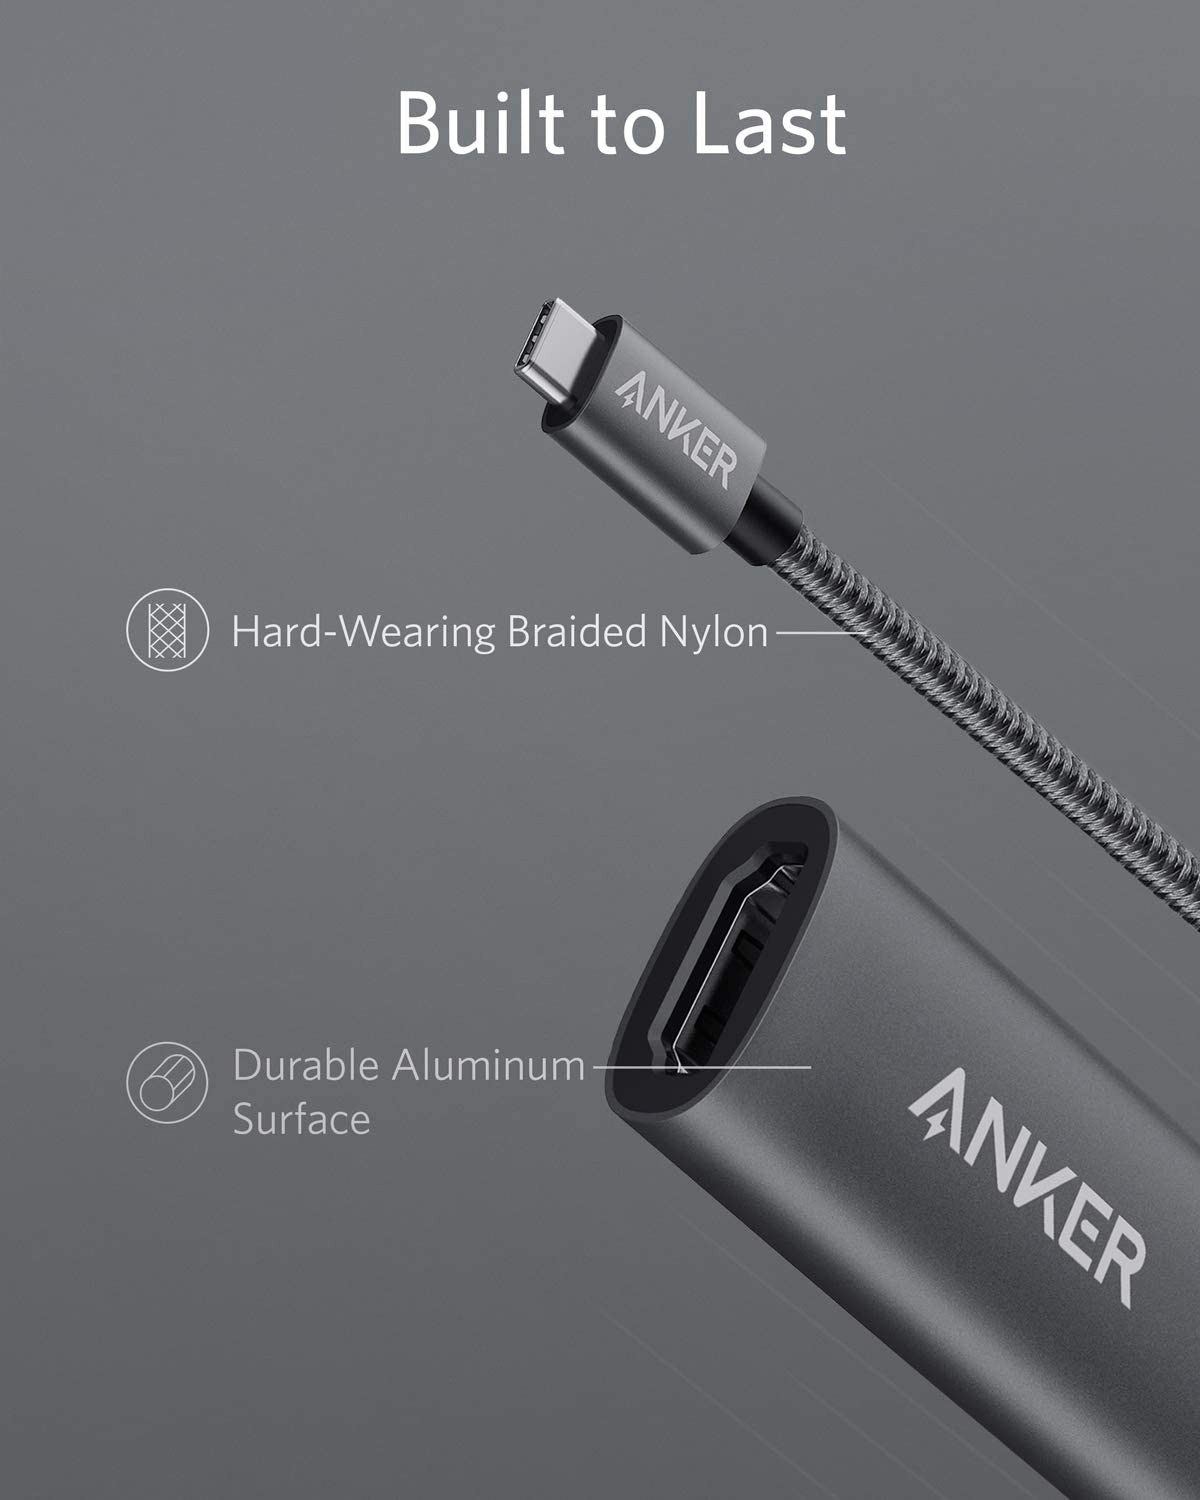 Anker PowerExpand+ USB C to HDMI Adapter, A8312TA1